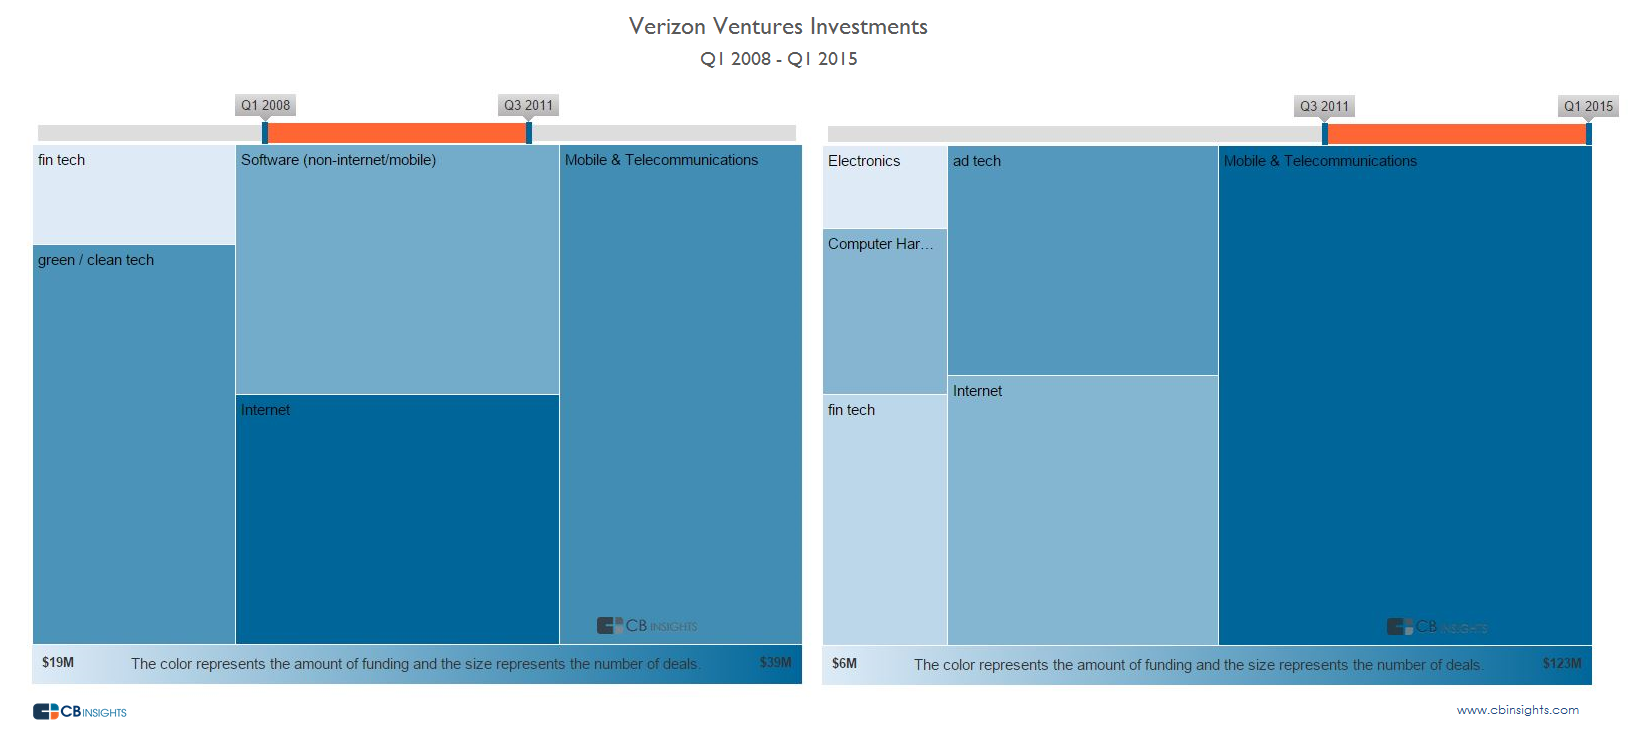 Verizon Venture Investments